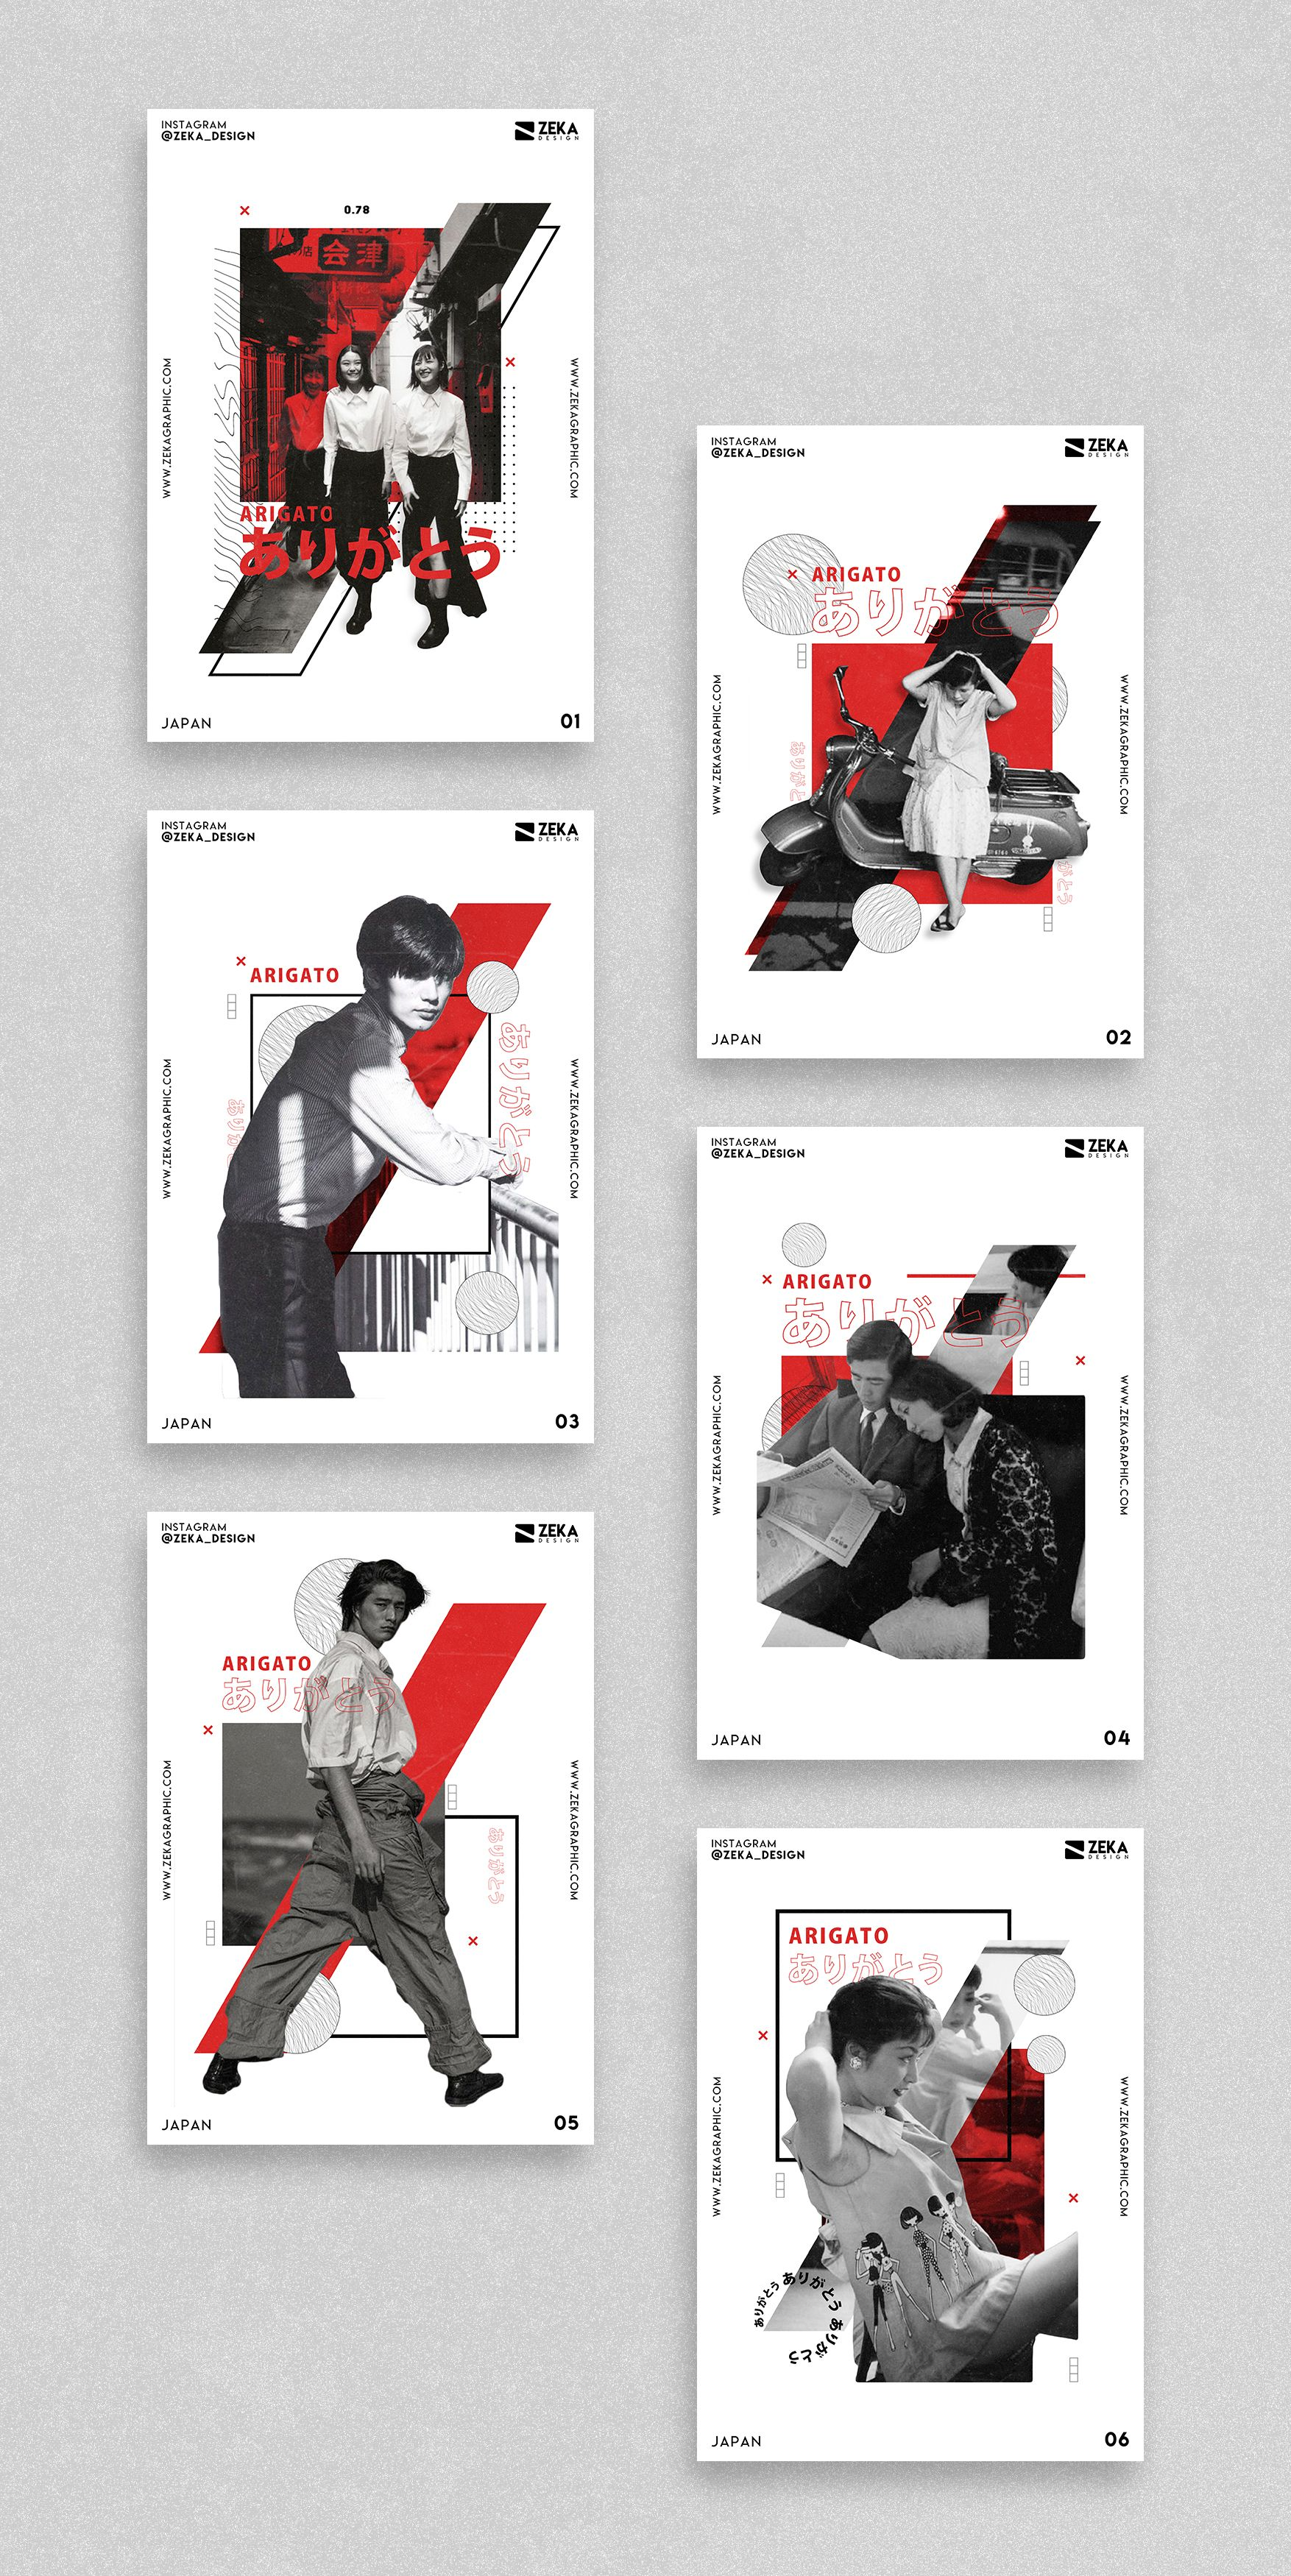 Japan Poster Design Inspiration Minimalist And Creative Graphic Design Proje In 2020 Minimalist Graphic Design Graphic Design Posters Graphic Design Typography Poster,Architecture Building Design